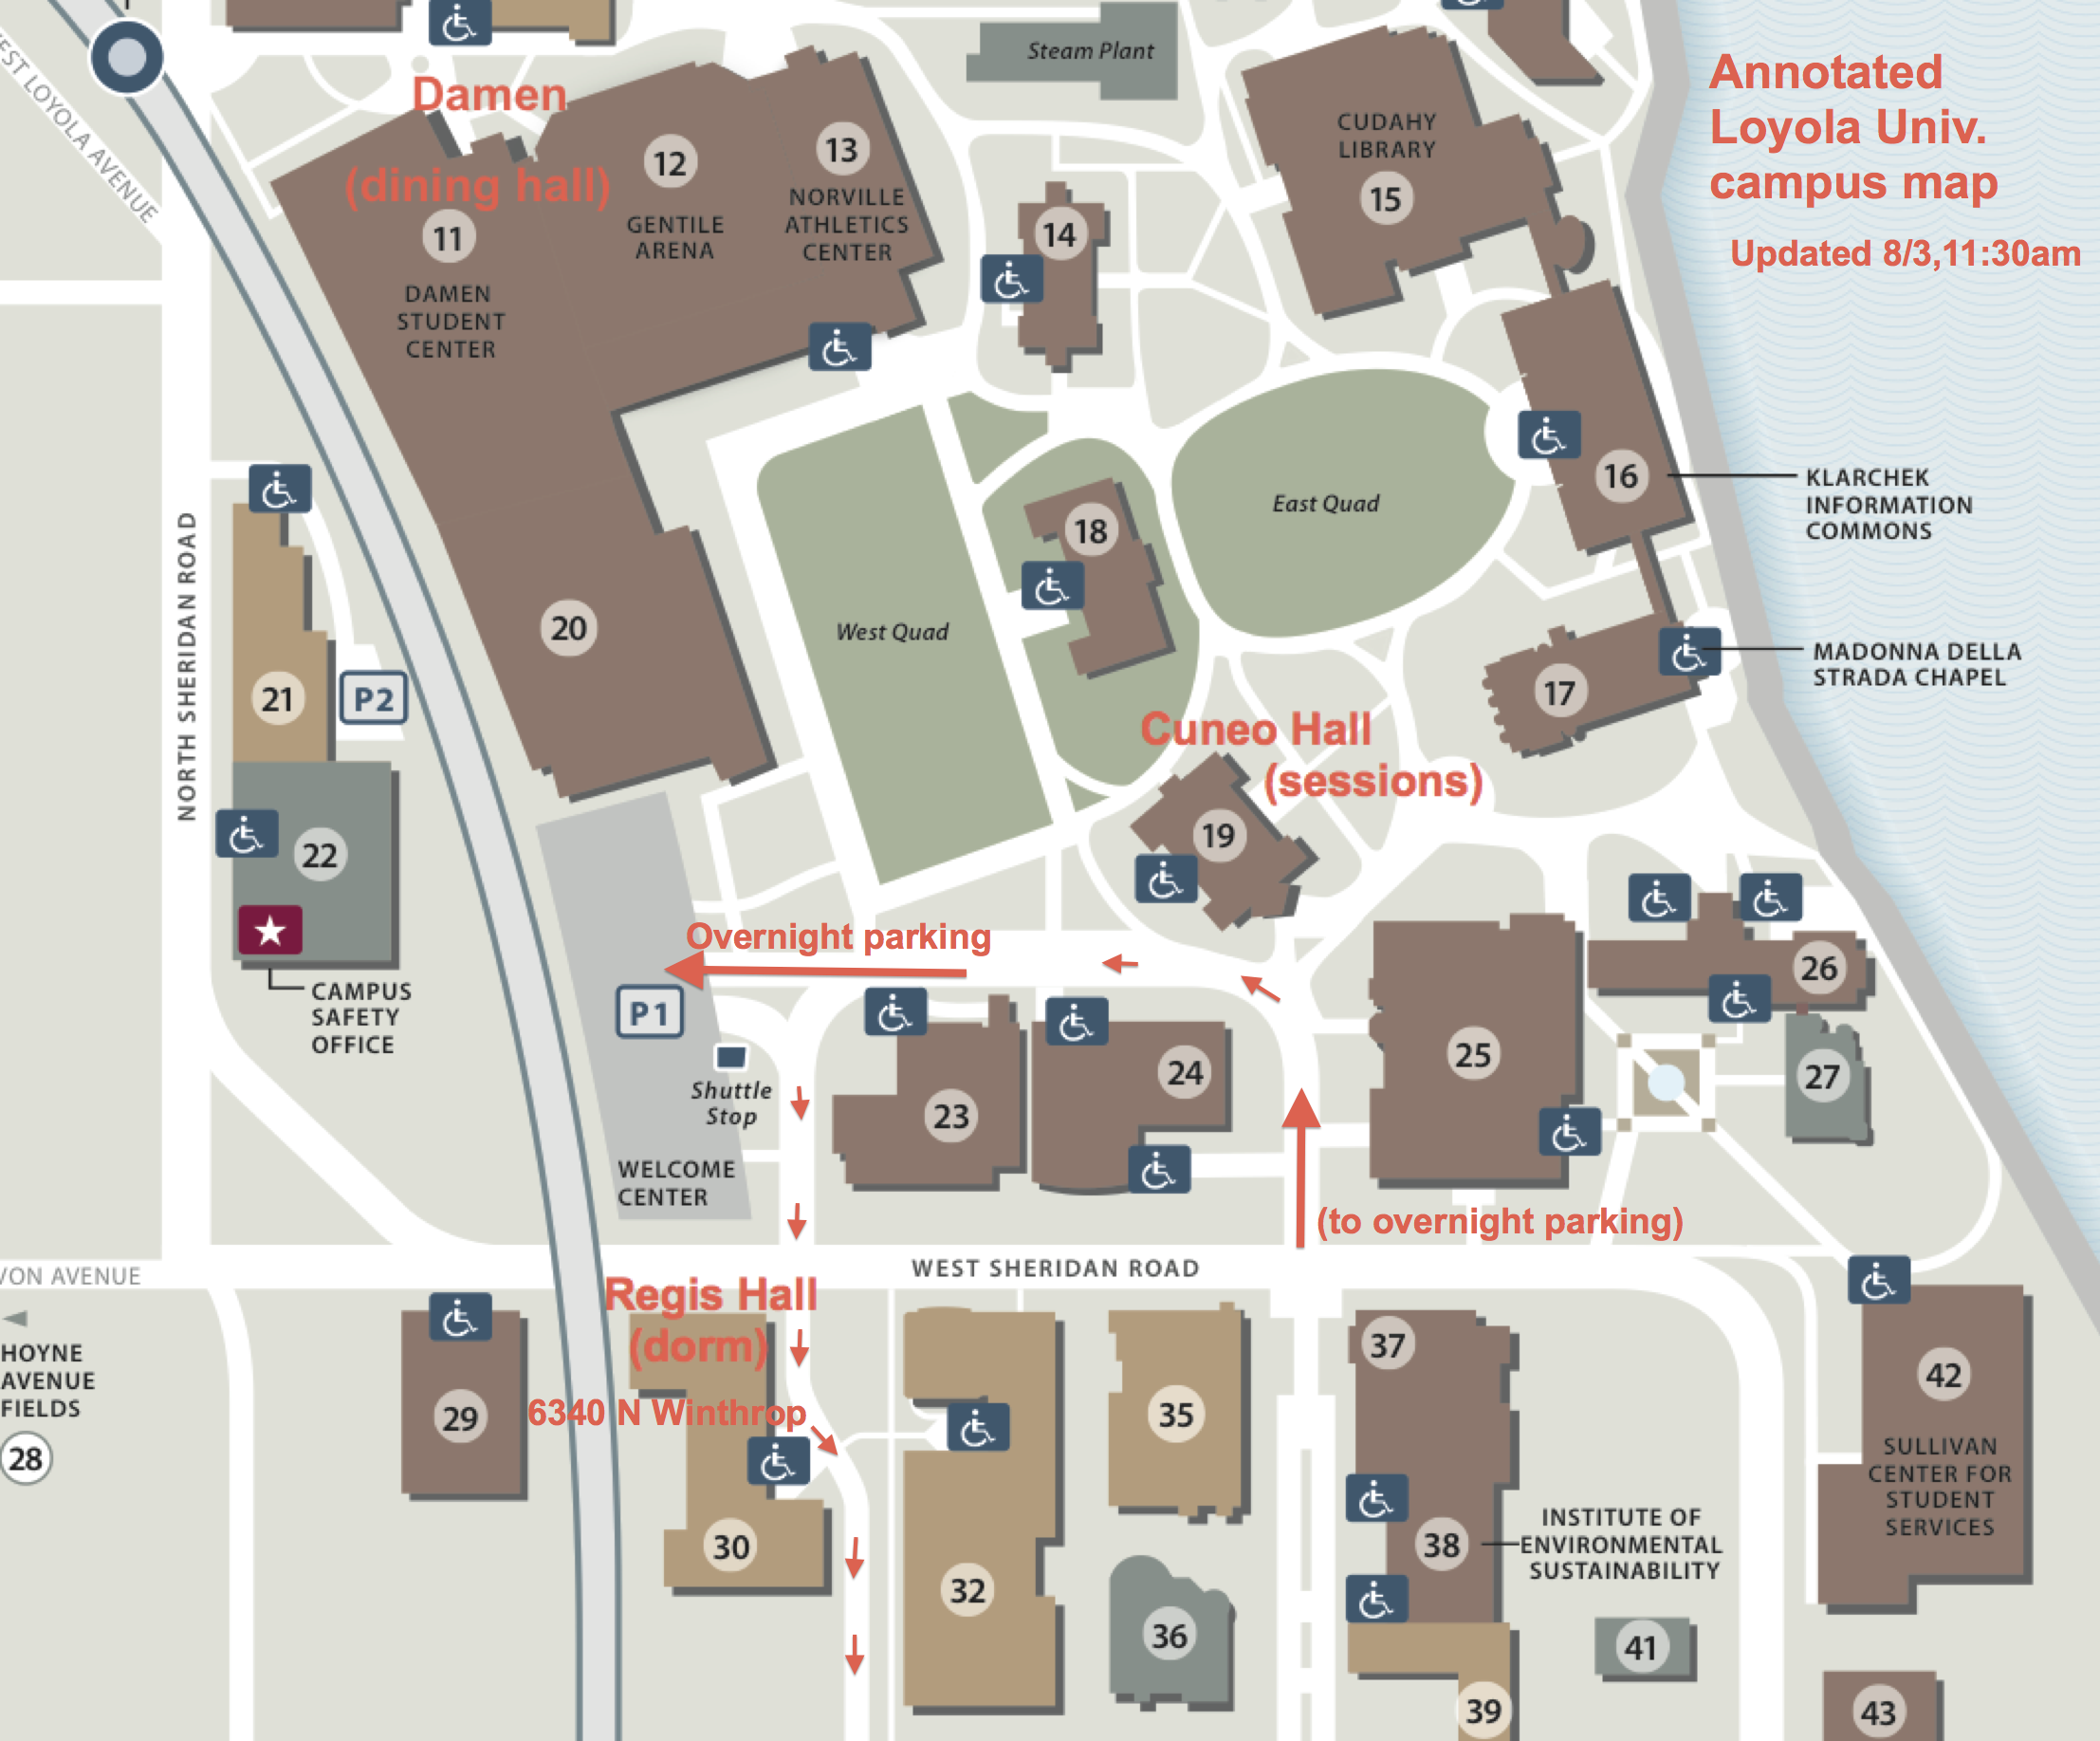 Loyola University annotated closeup map